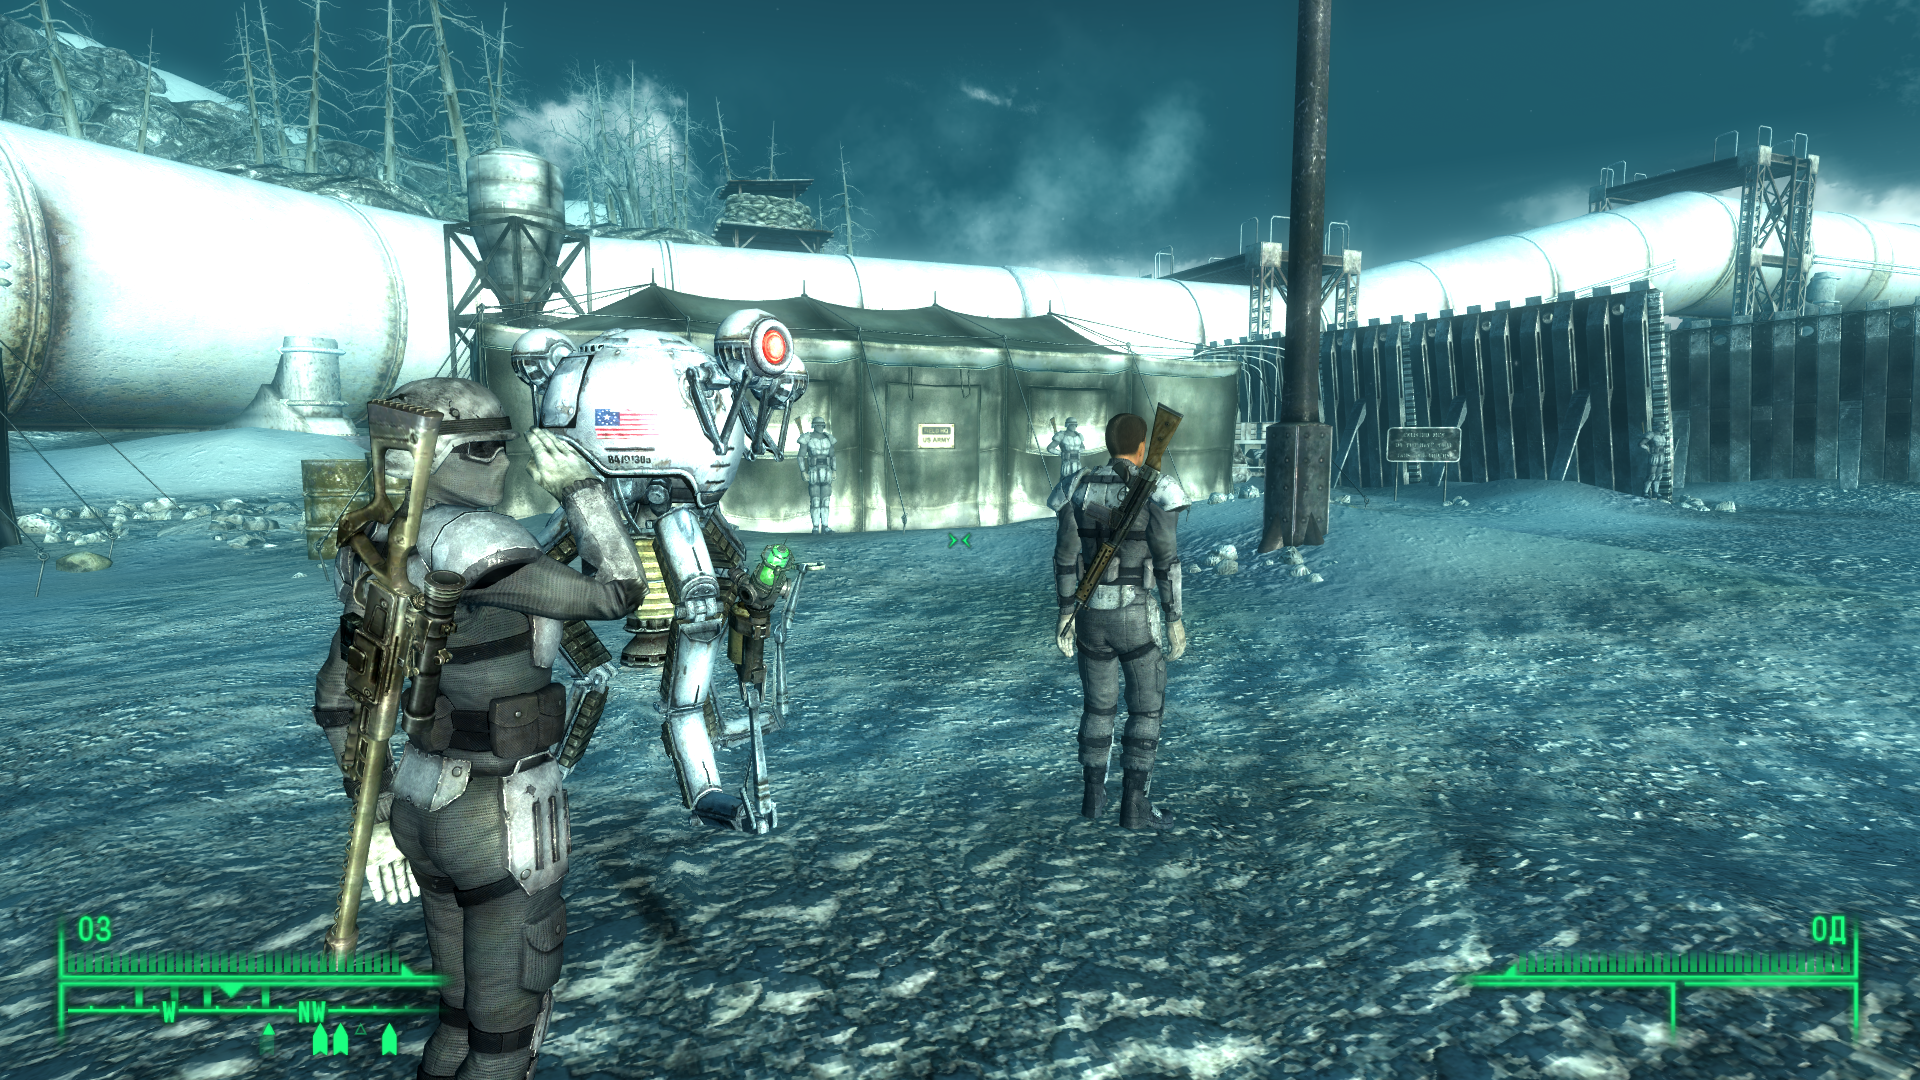 Fallout 3: Operation: Anchorage Screenshots for Windows